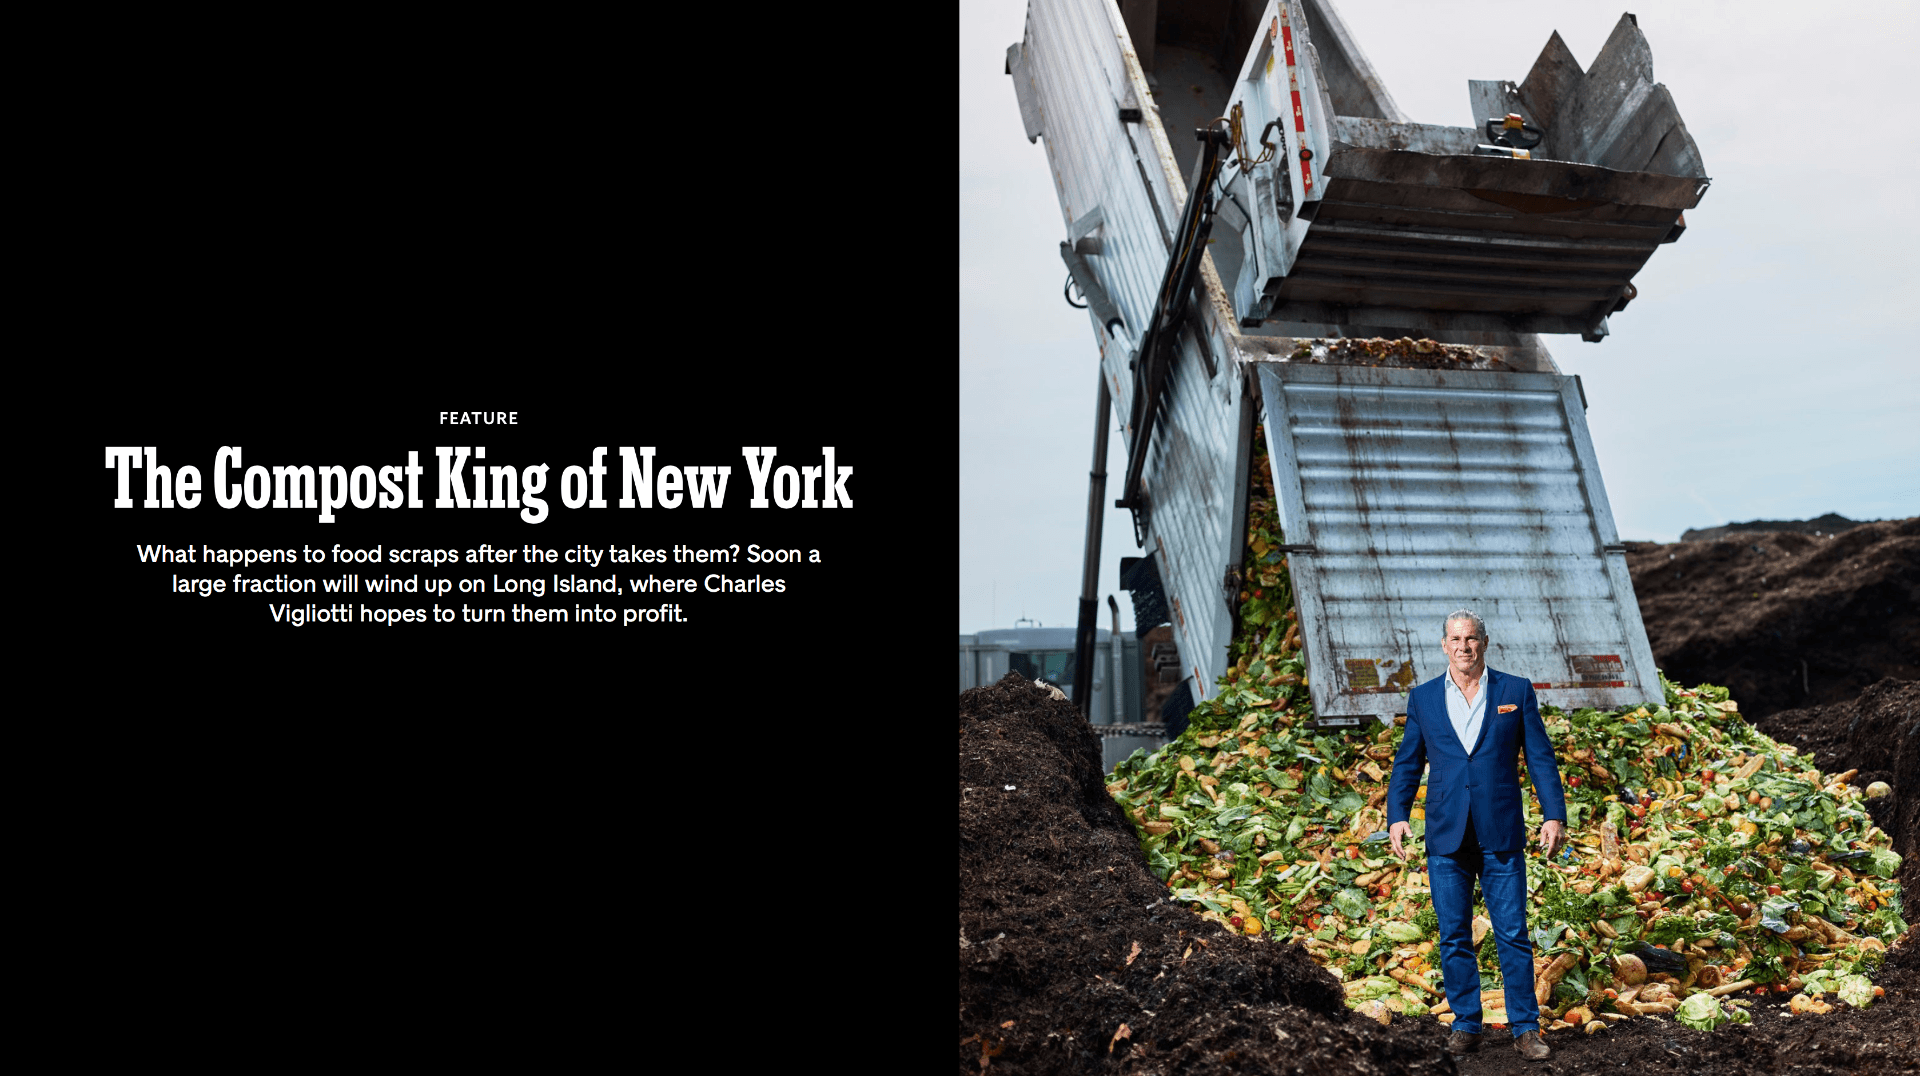 The Compost King of New York